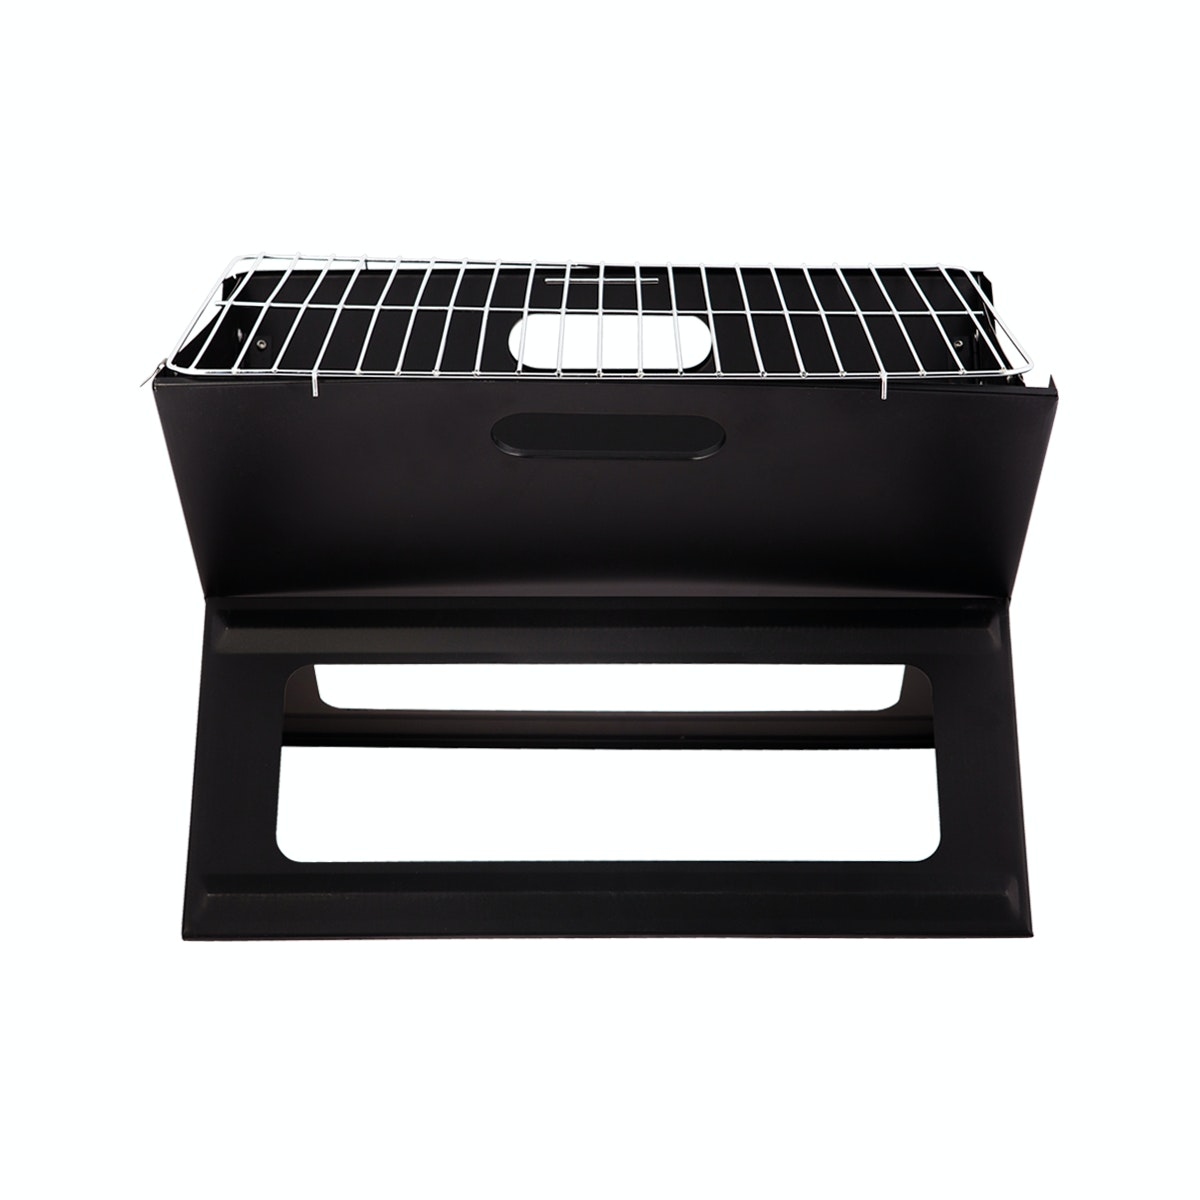 Maspion Foldable Grill 45x30cm